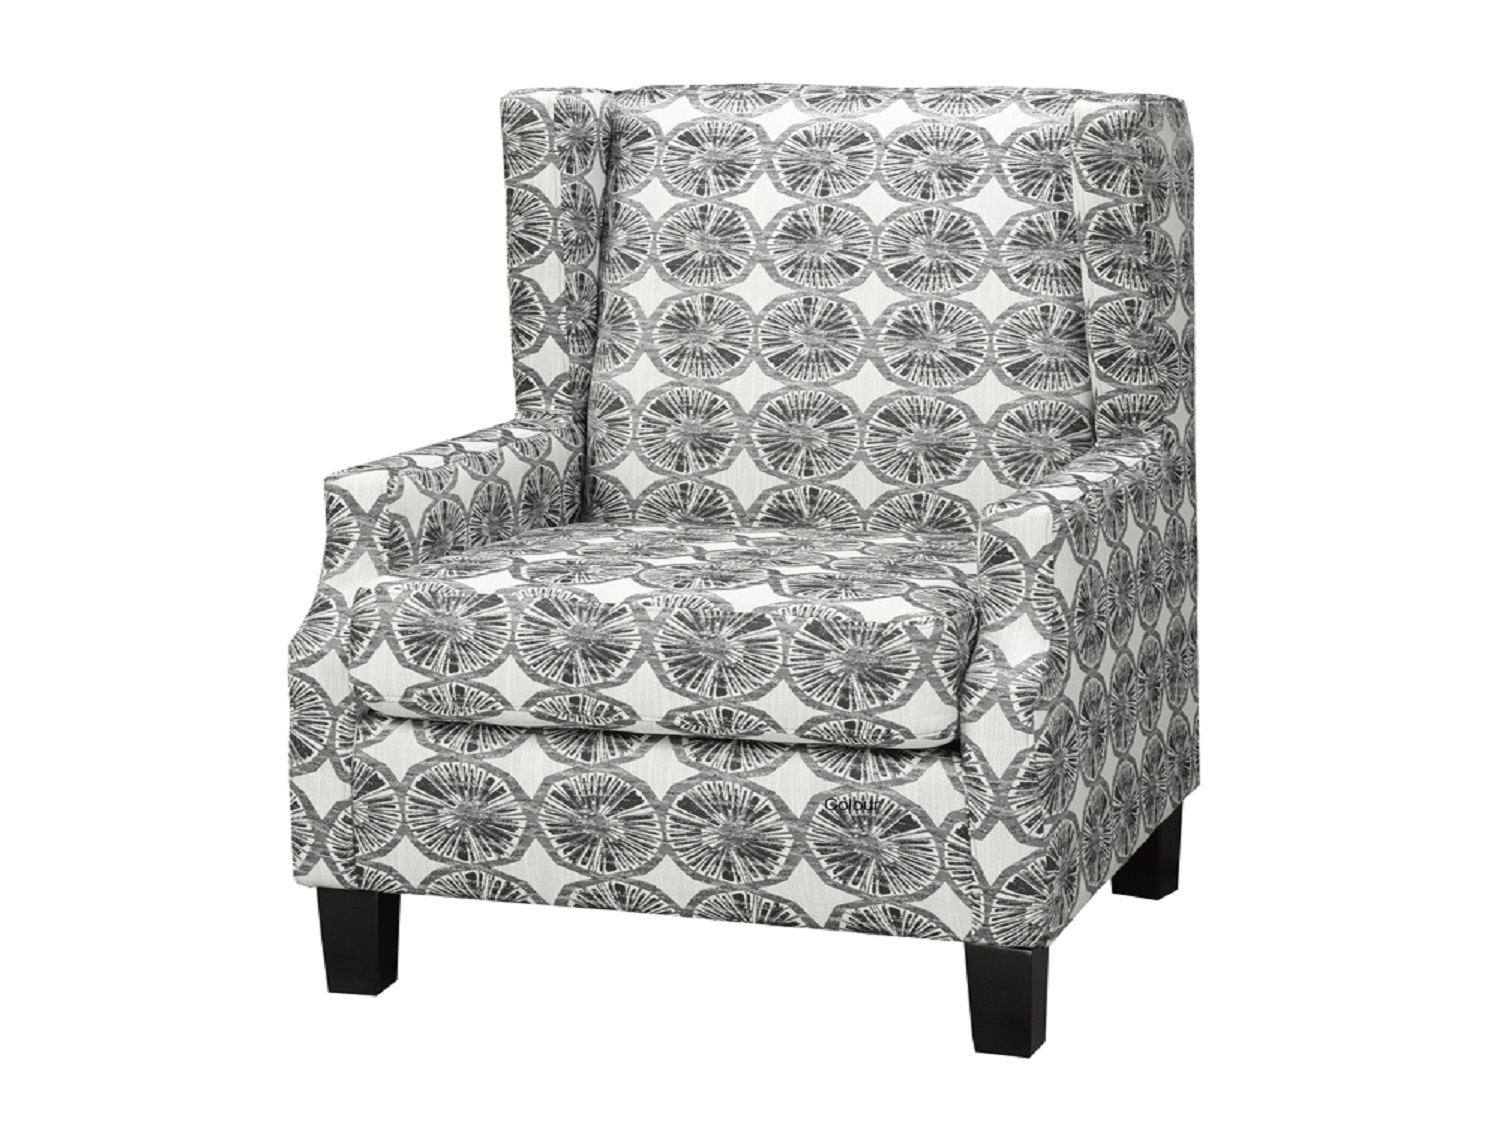 A class 457, 457, Accent Chairs by Midha Furniture to Brampton, Mississauga, Etobicoke, Toronto, Scraborough, Caledon, Oakville, Markham, Ajax, Pickering, Oshawa, Richmondhill, Kitchener, Hamilton and GTA area